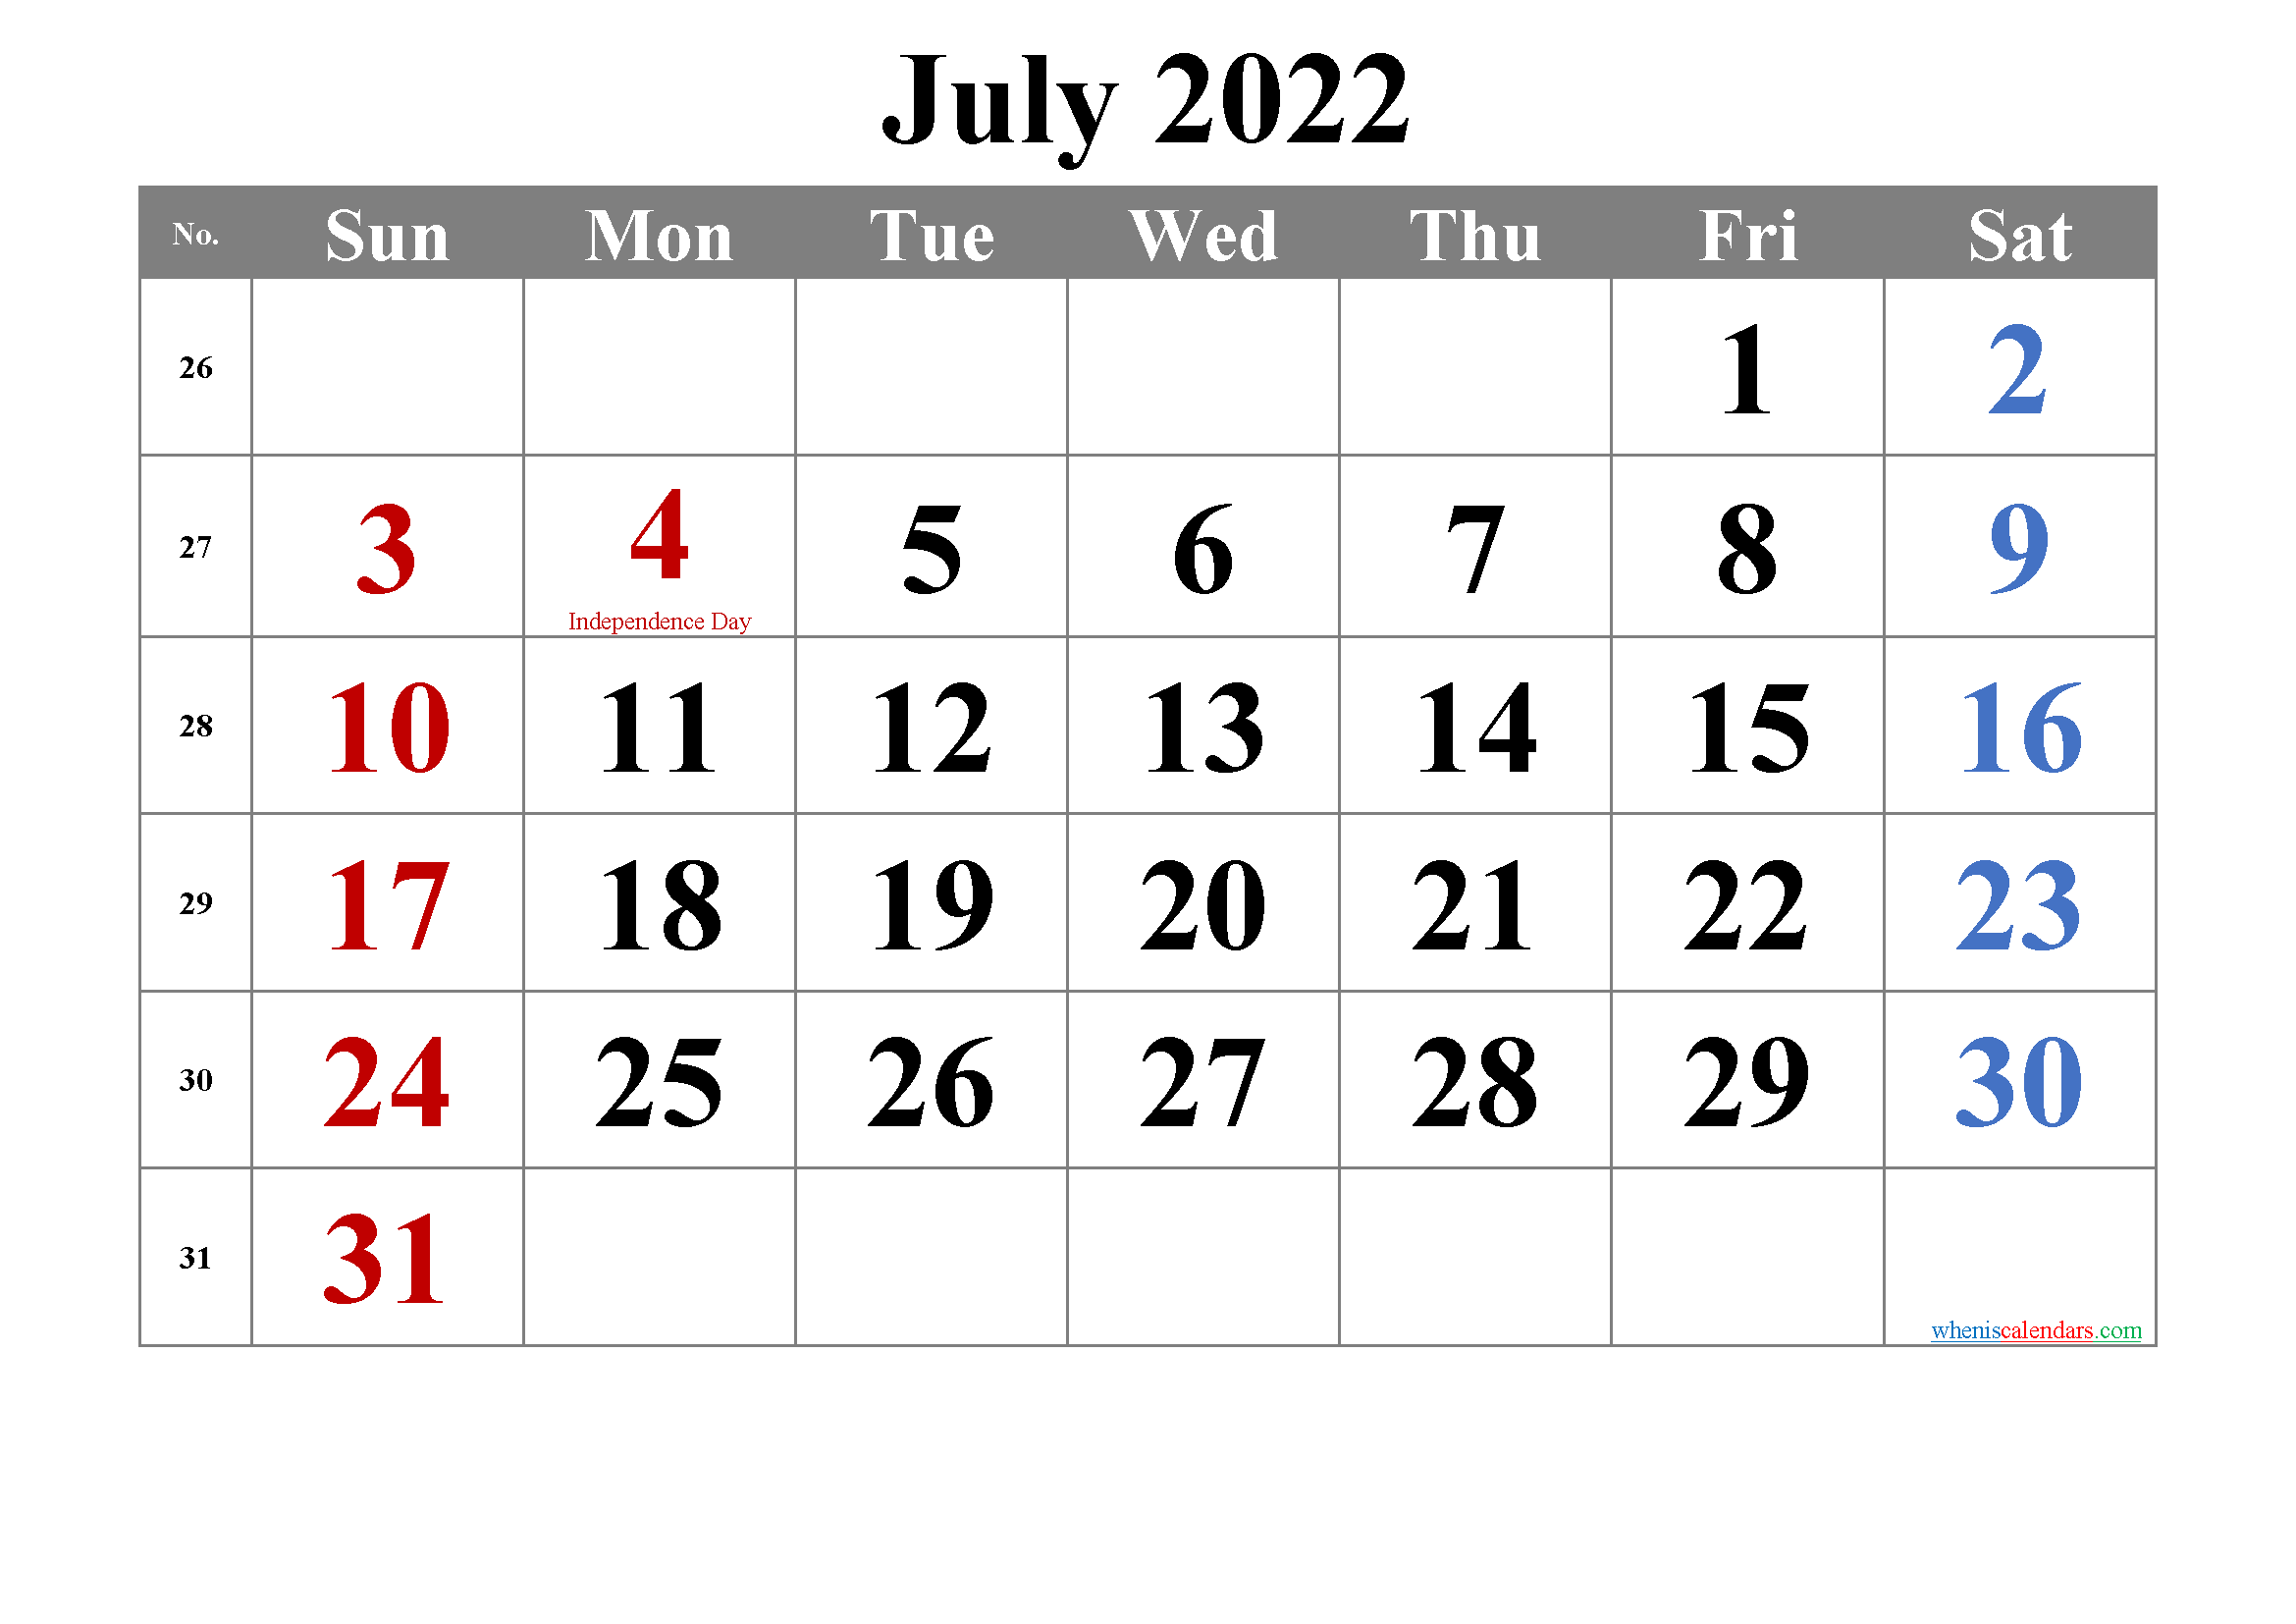 July 2022 Calendar with Holidays Printable